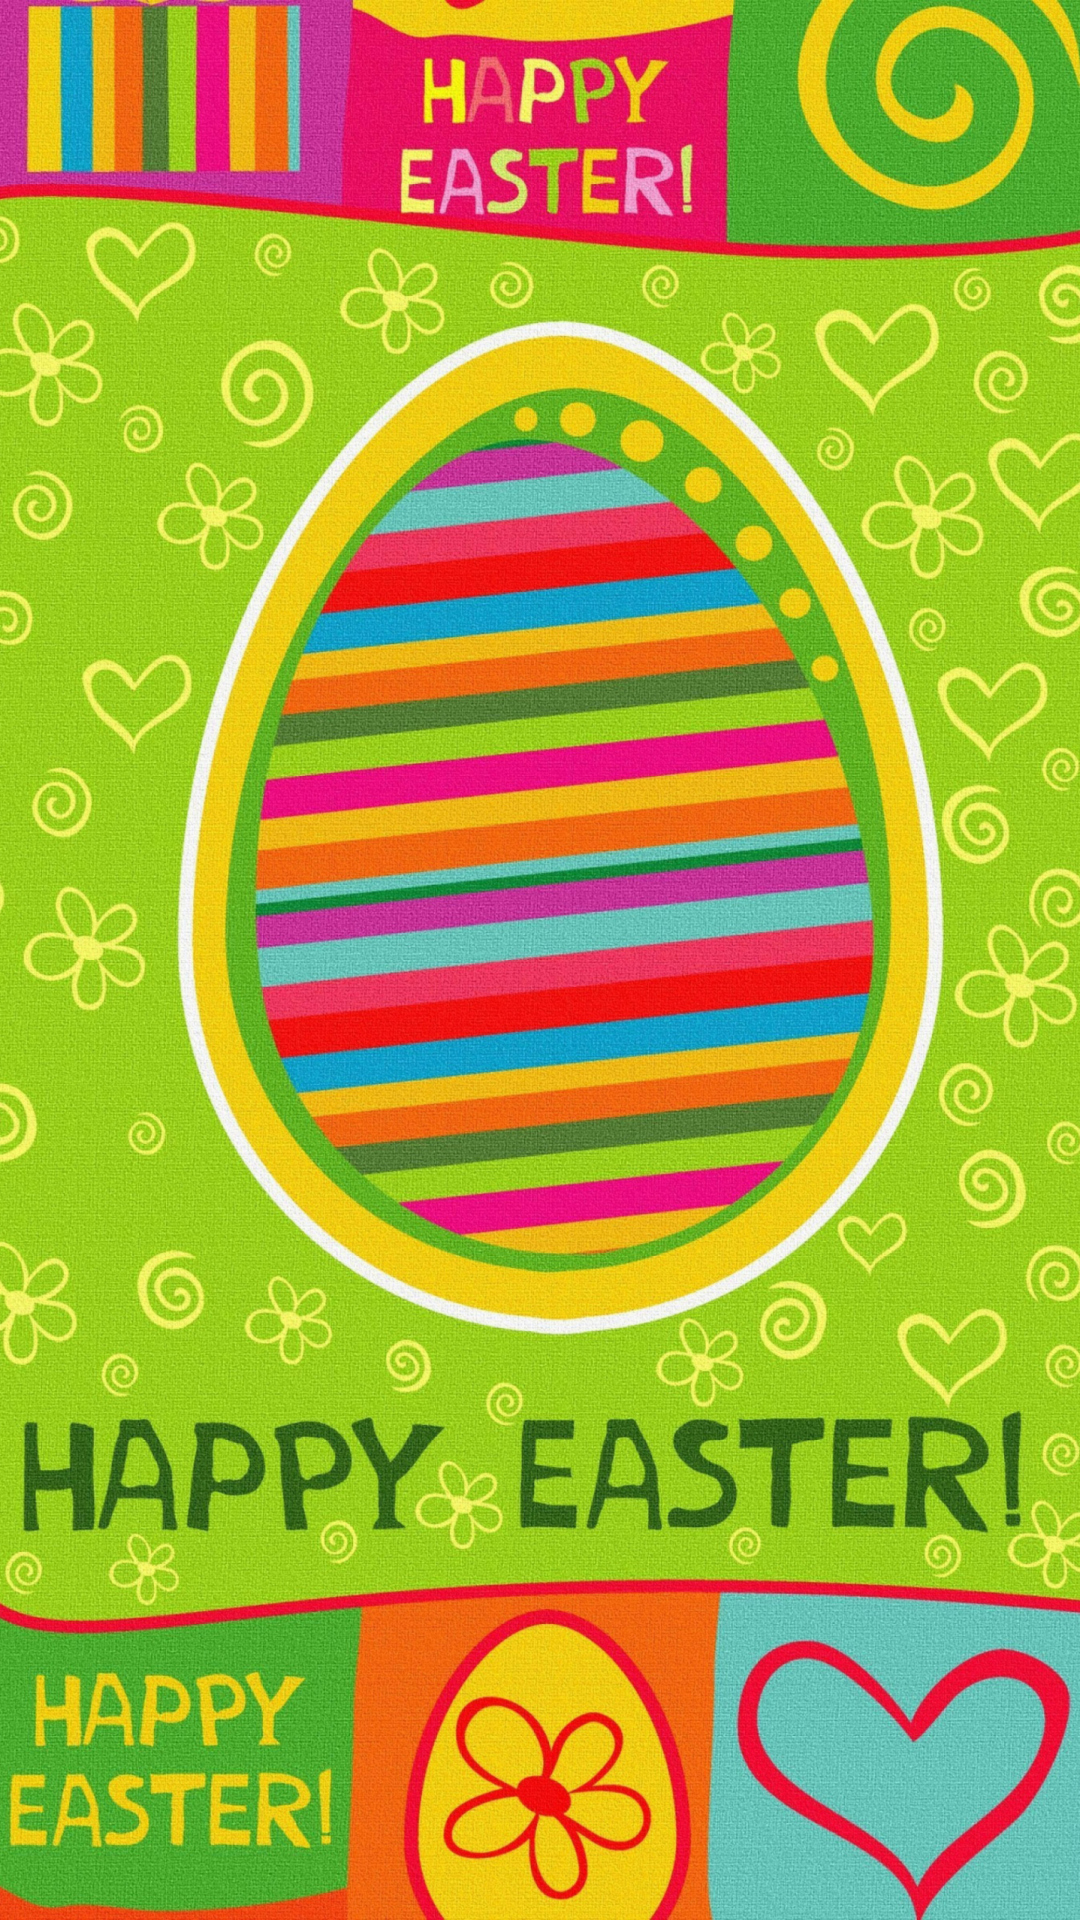 Happy Easter Background wallpaper 1080x1920